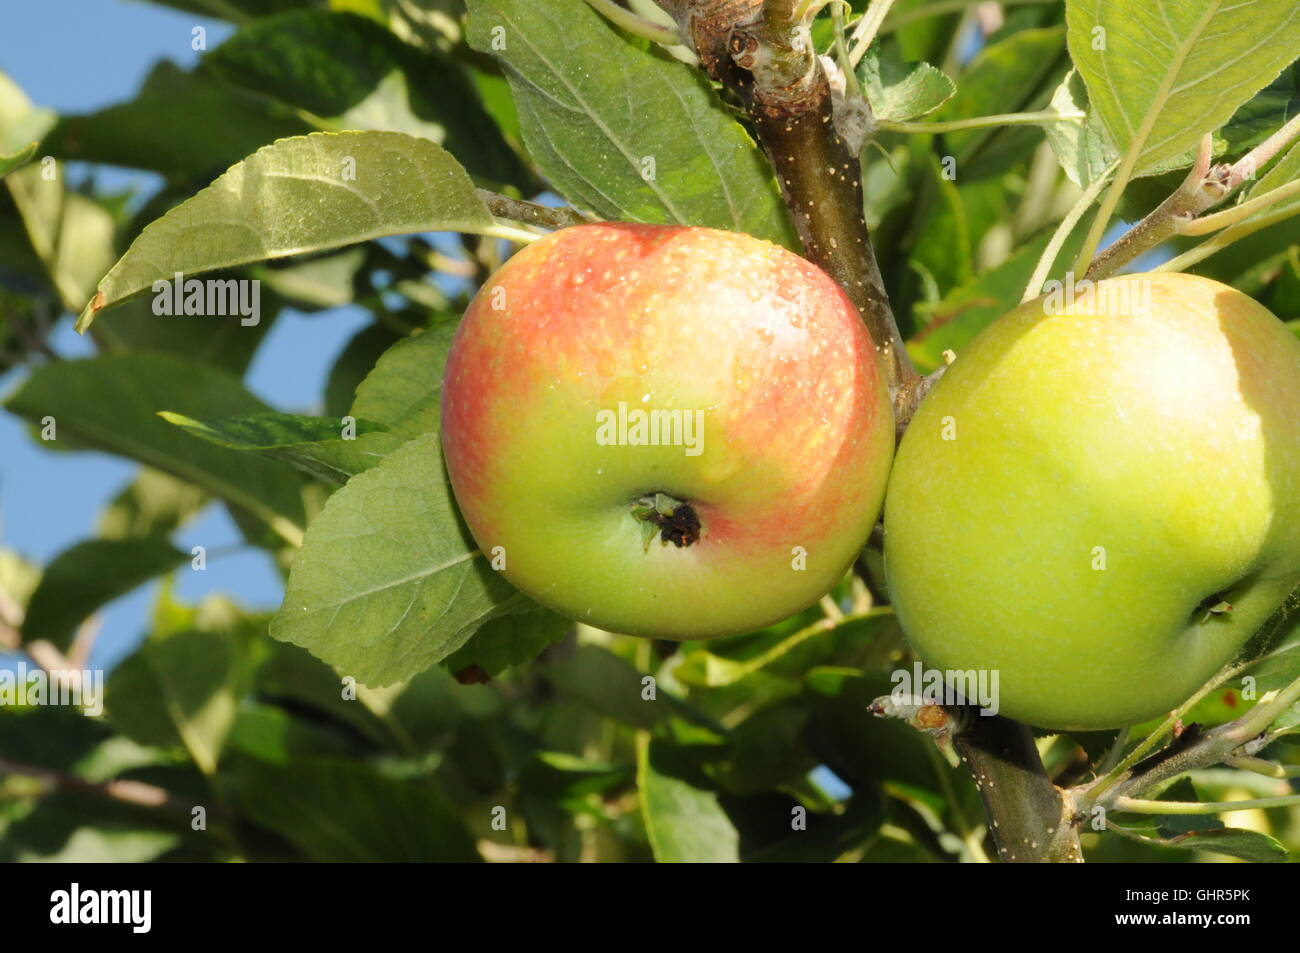 Organic English apples on tree. - Stock Image